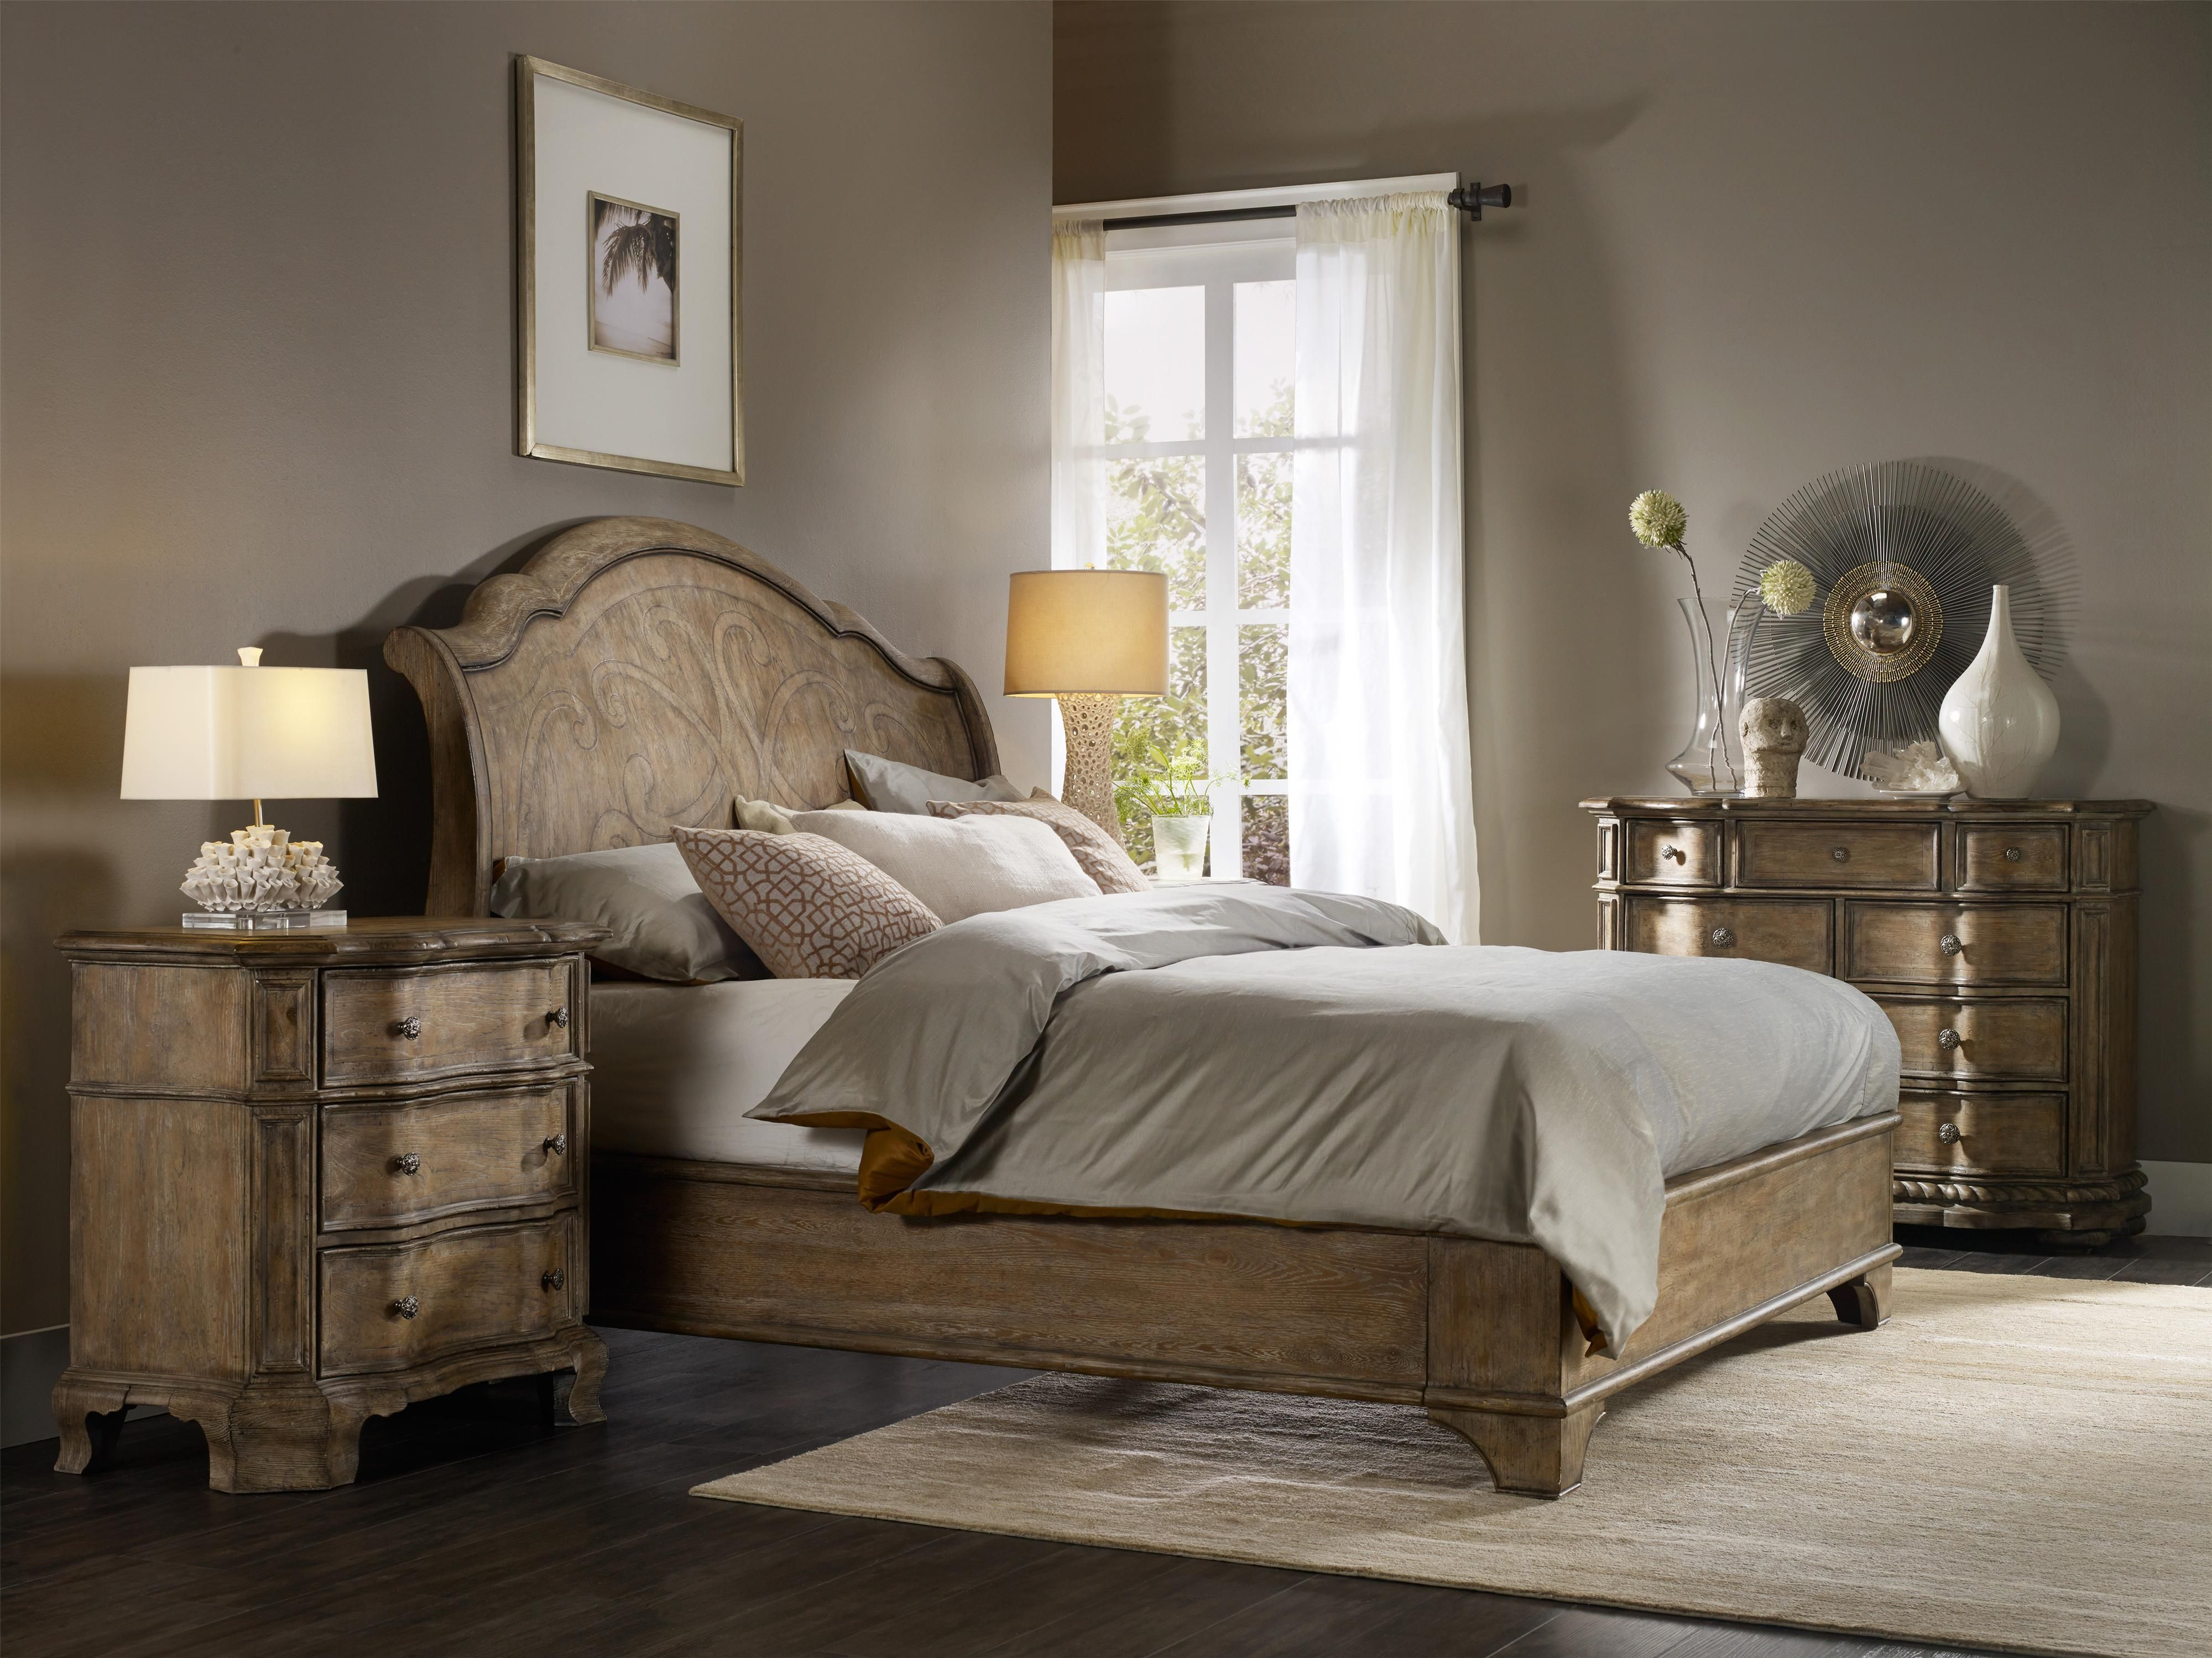 Solana Queen Bedroom Group 3 by Hooker Furniture | Wish list ...